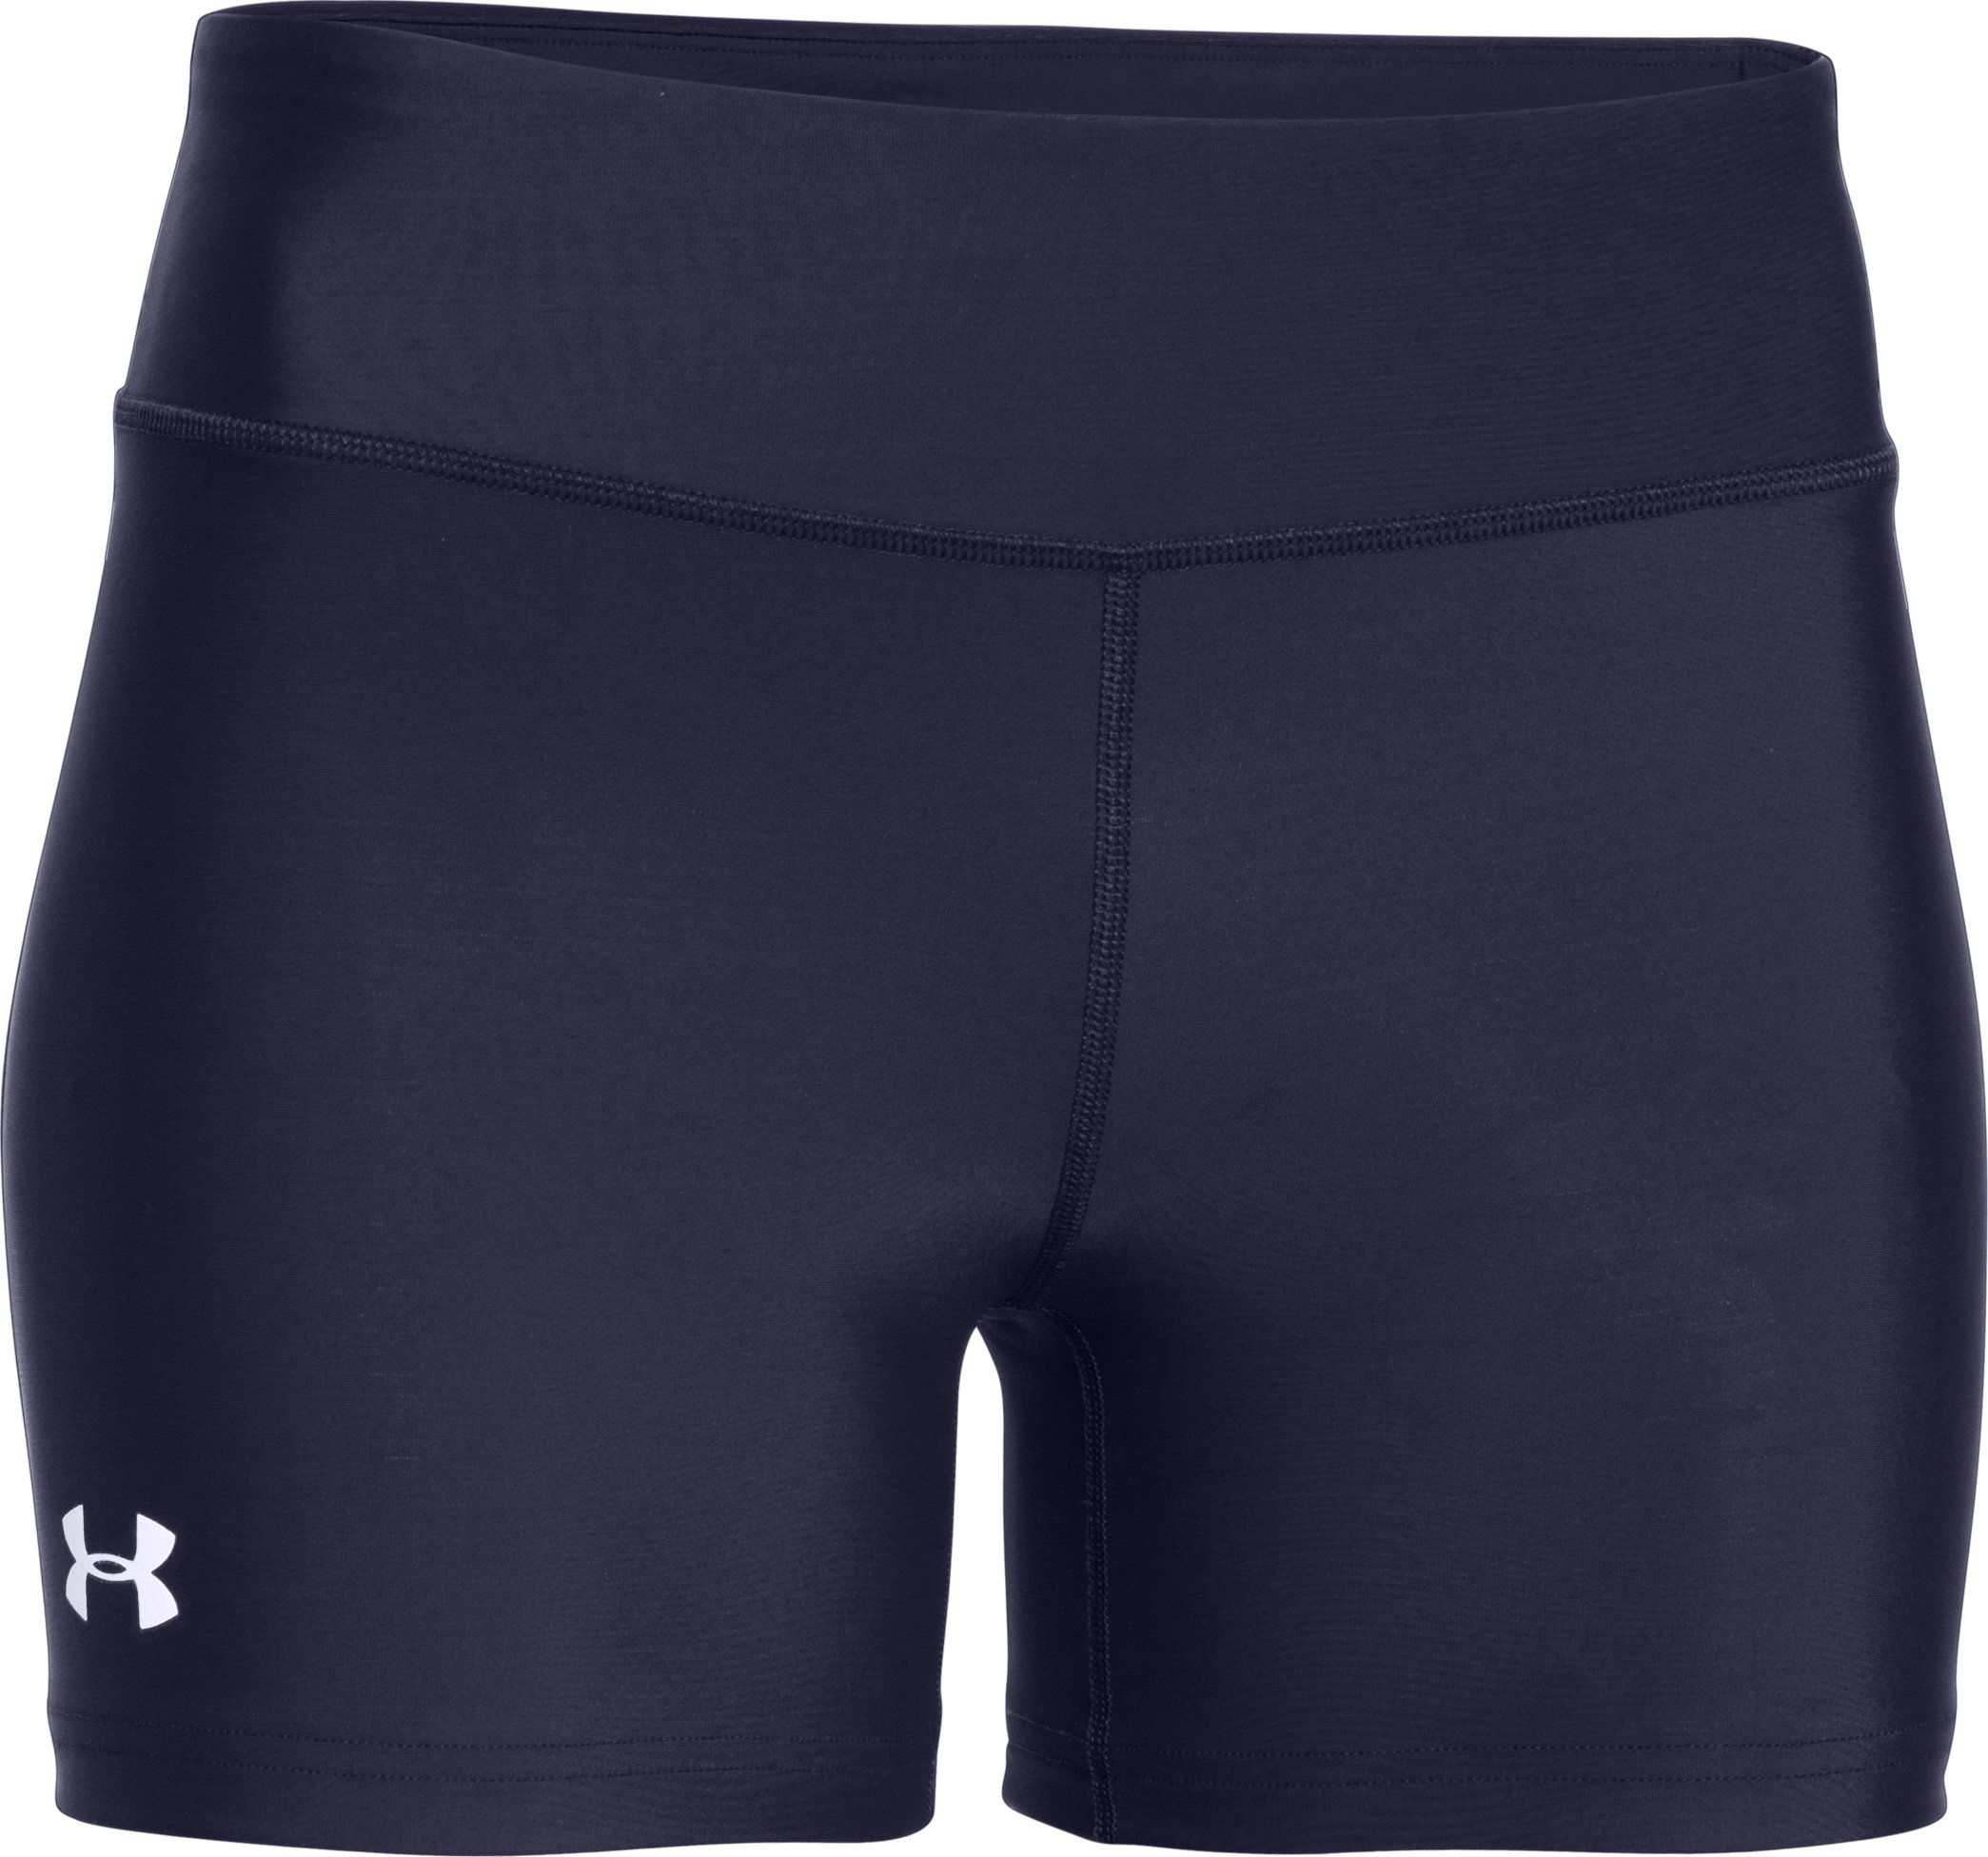 "Women's UA On The Court 4"" Short, Midnight Navy"